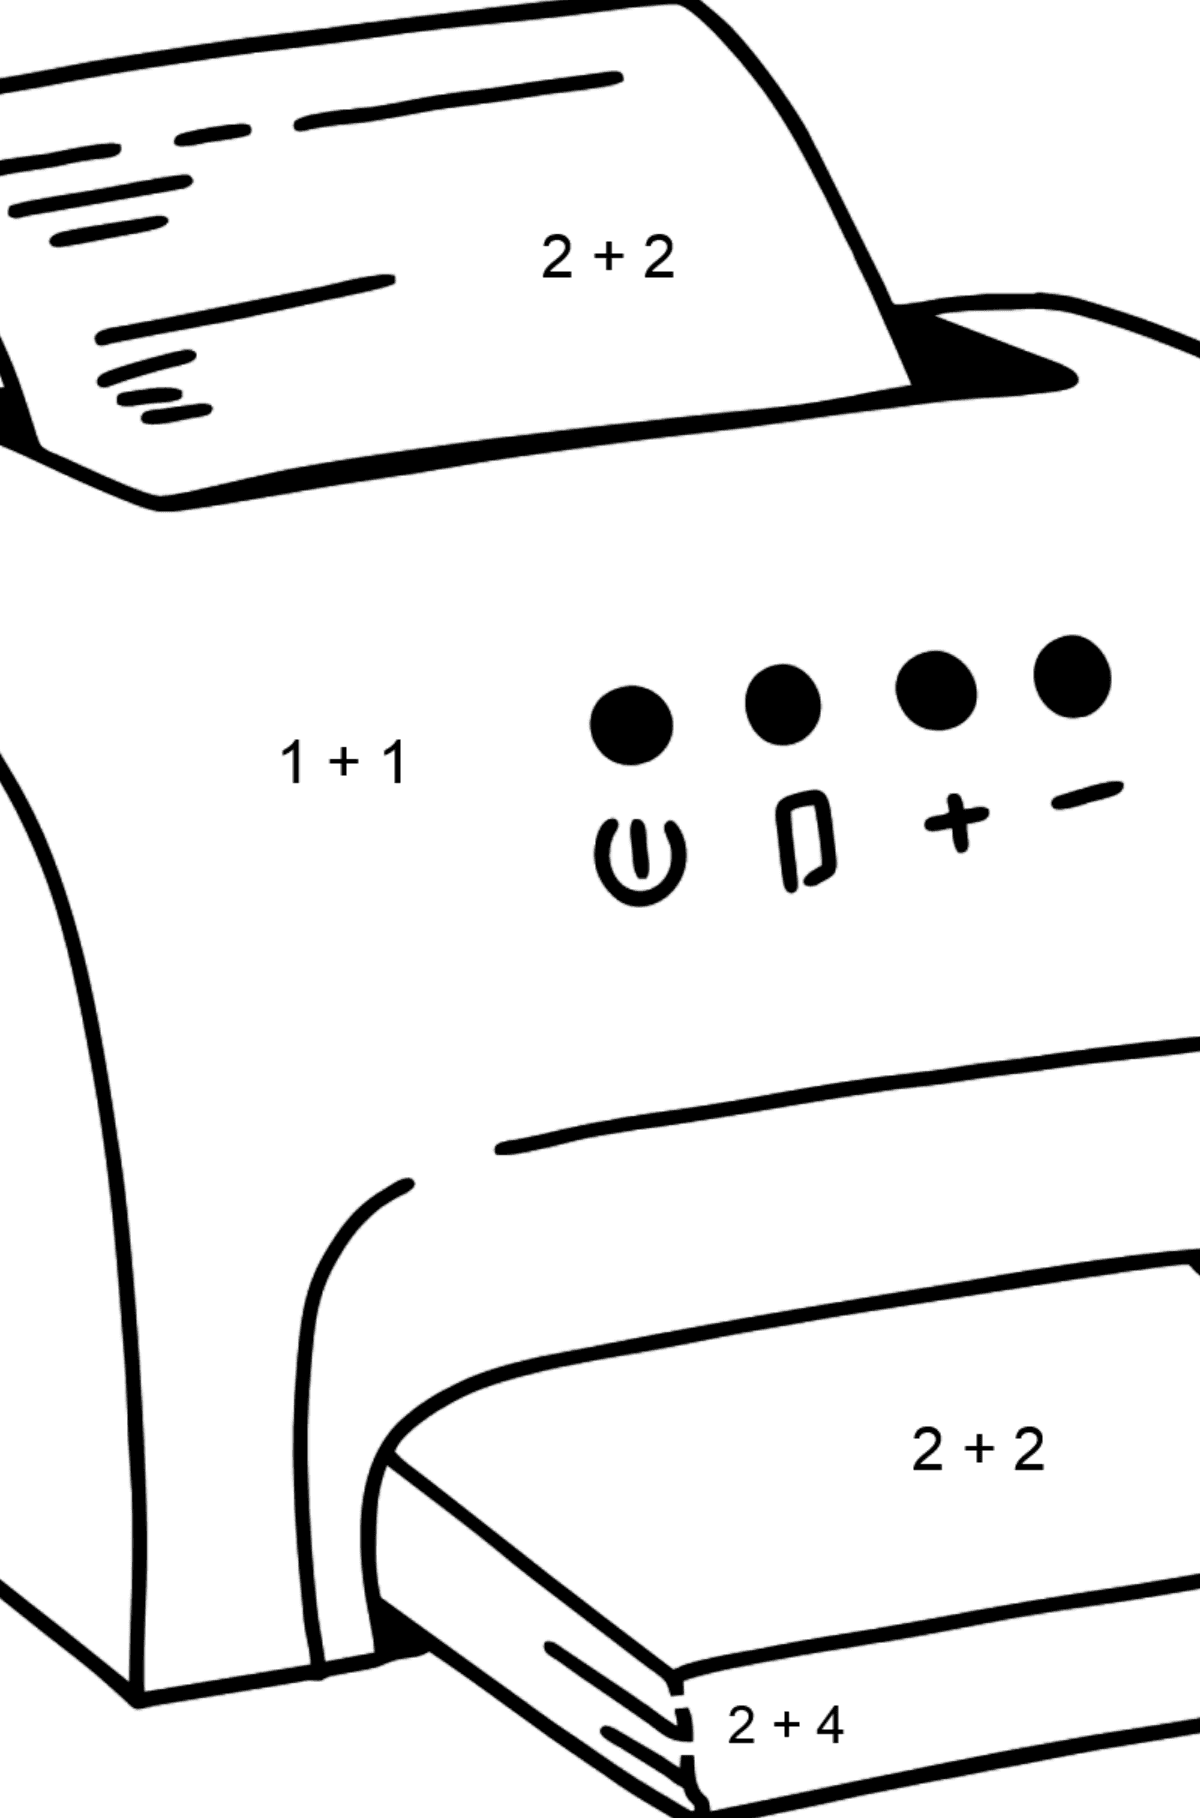 Printer coloring page - Math Coloring - Addition for Kids